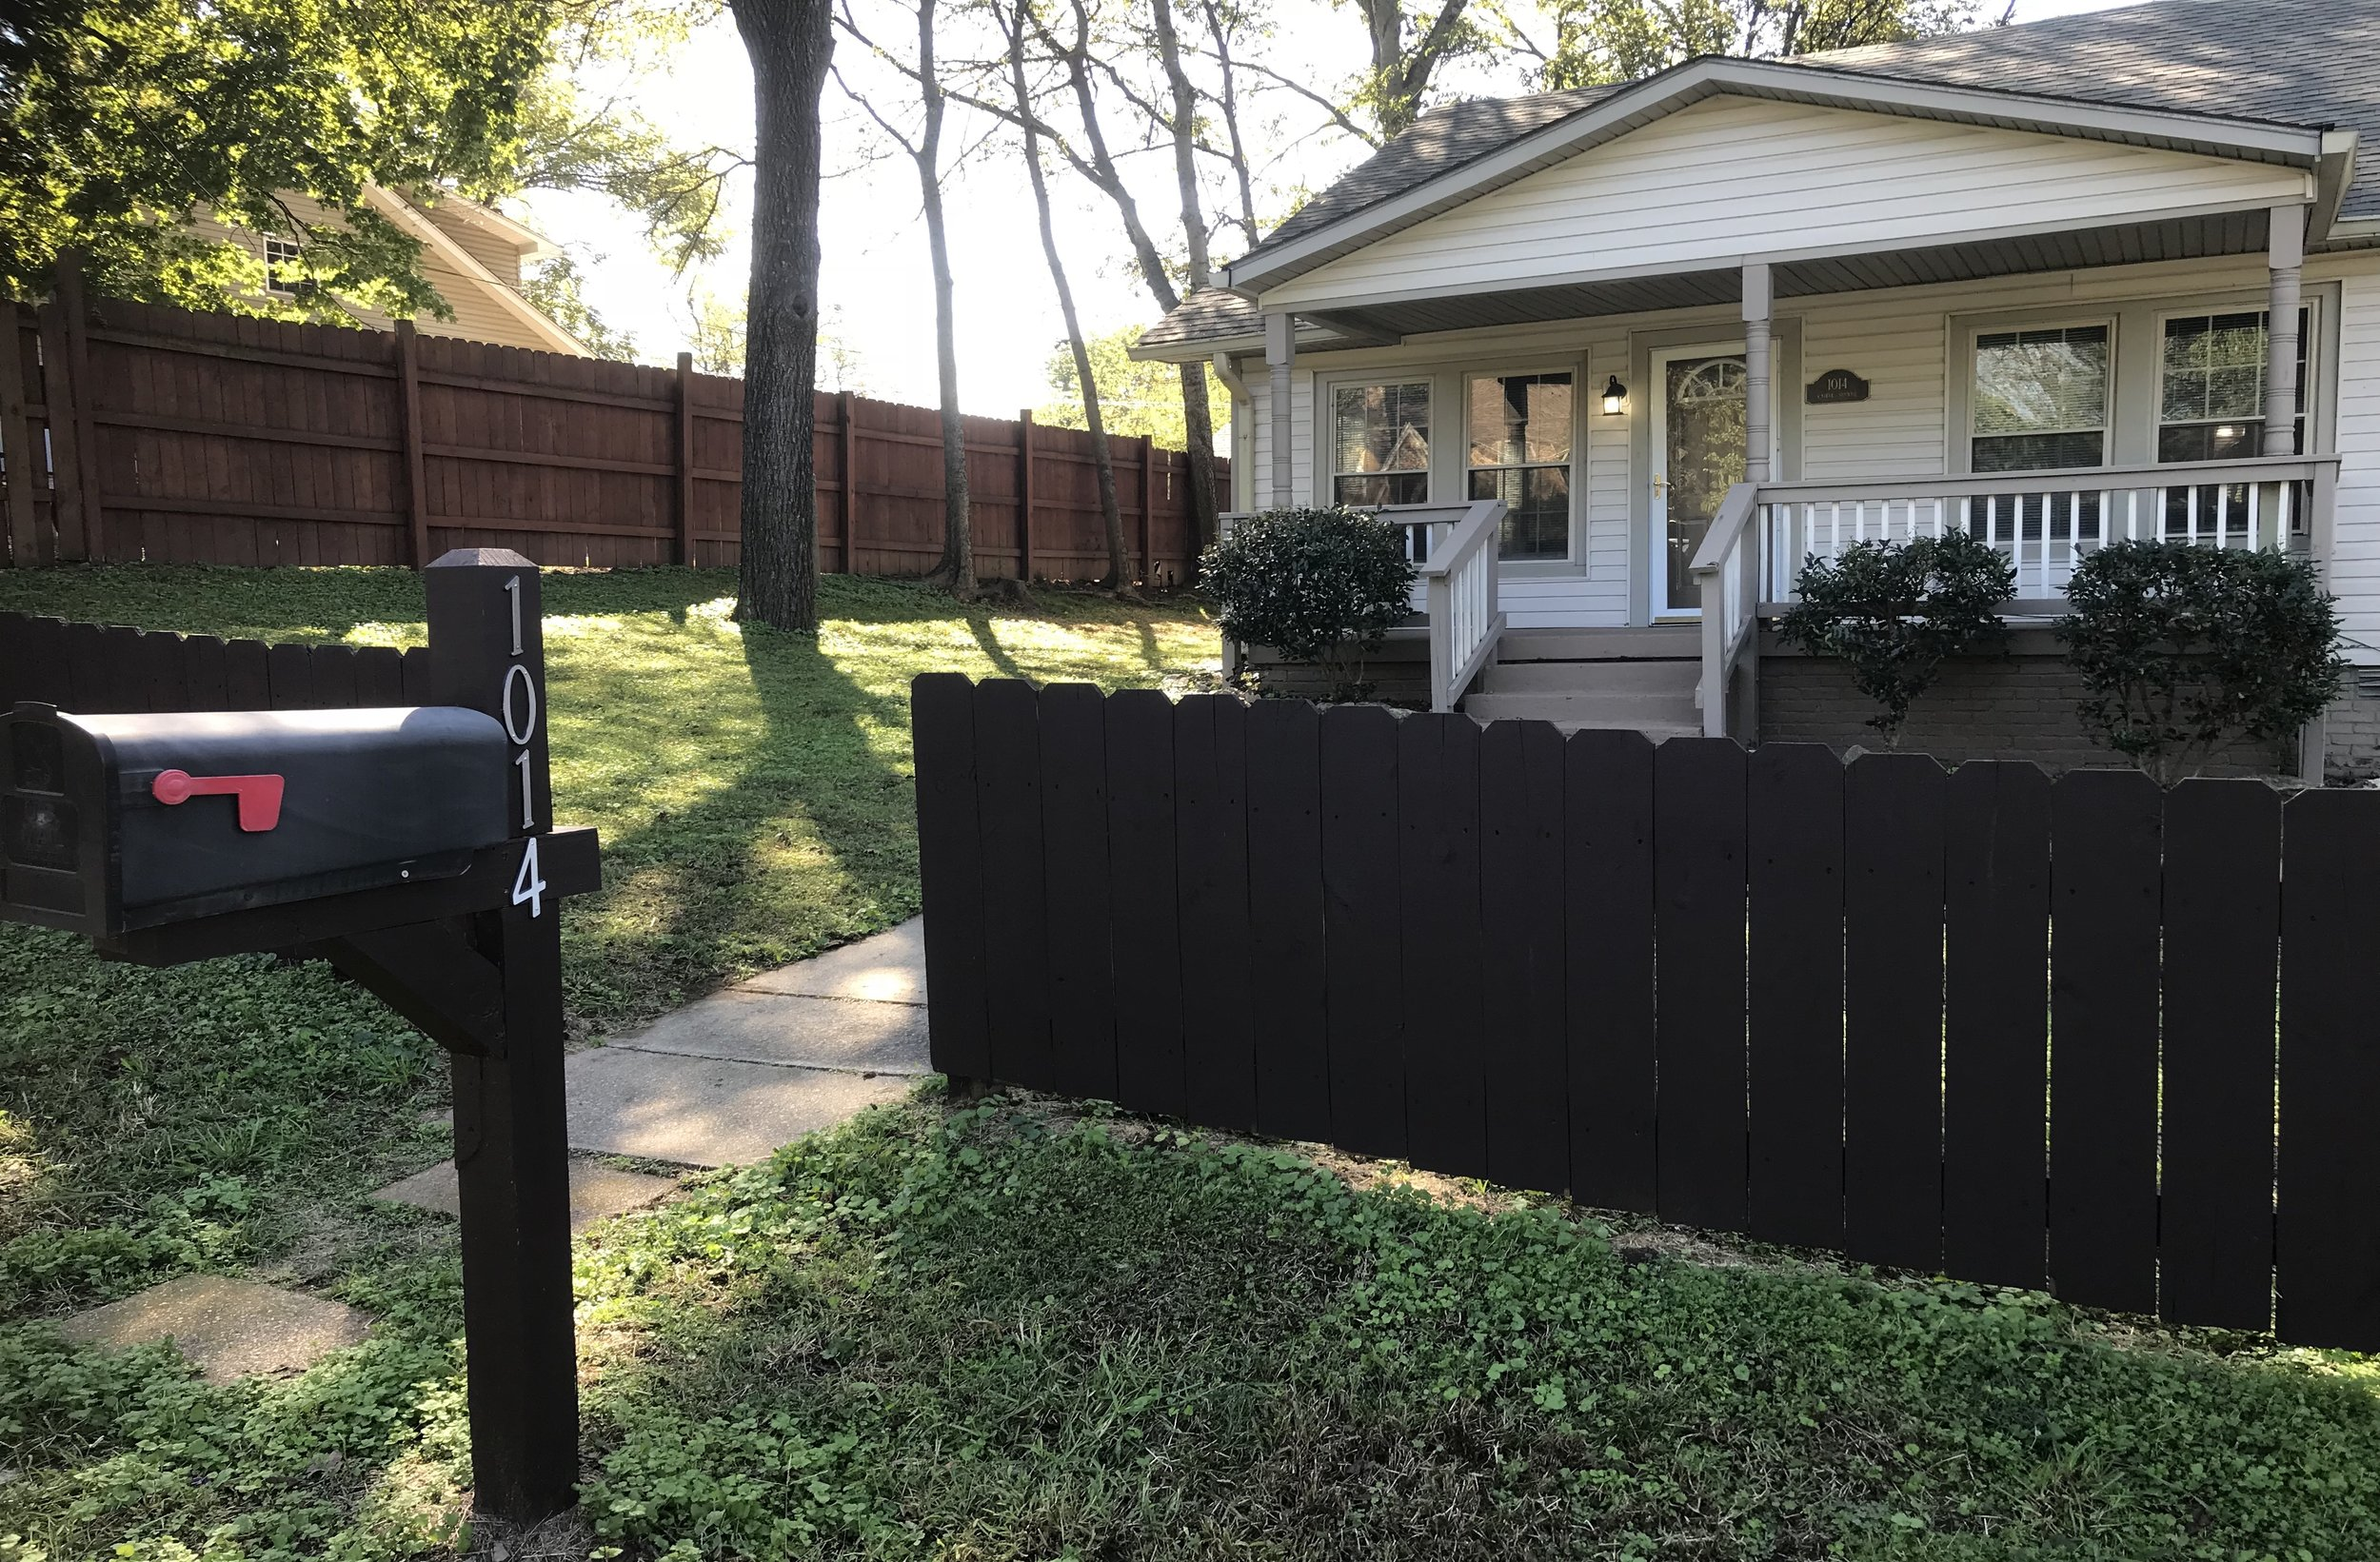 1014 Cahal   RENTED   E. NASHVILLE:   Single Family Home  3 Br, 1.5 Ba + Covered Porch +Privacy Fenced